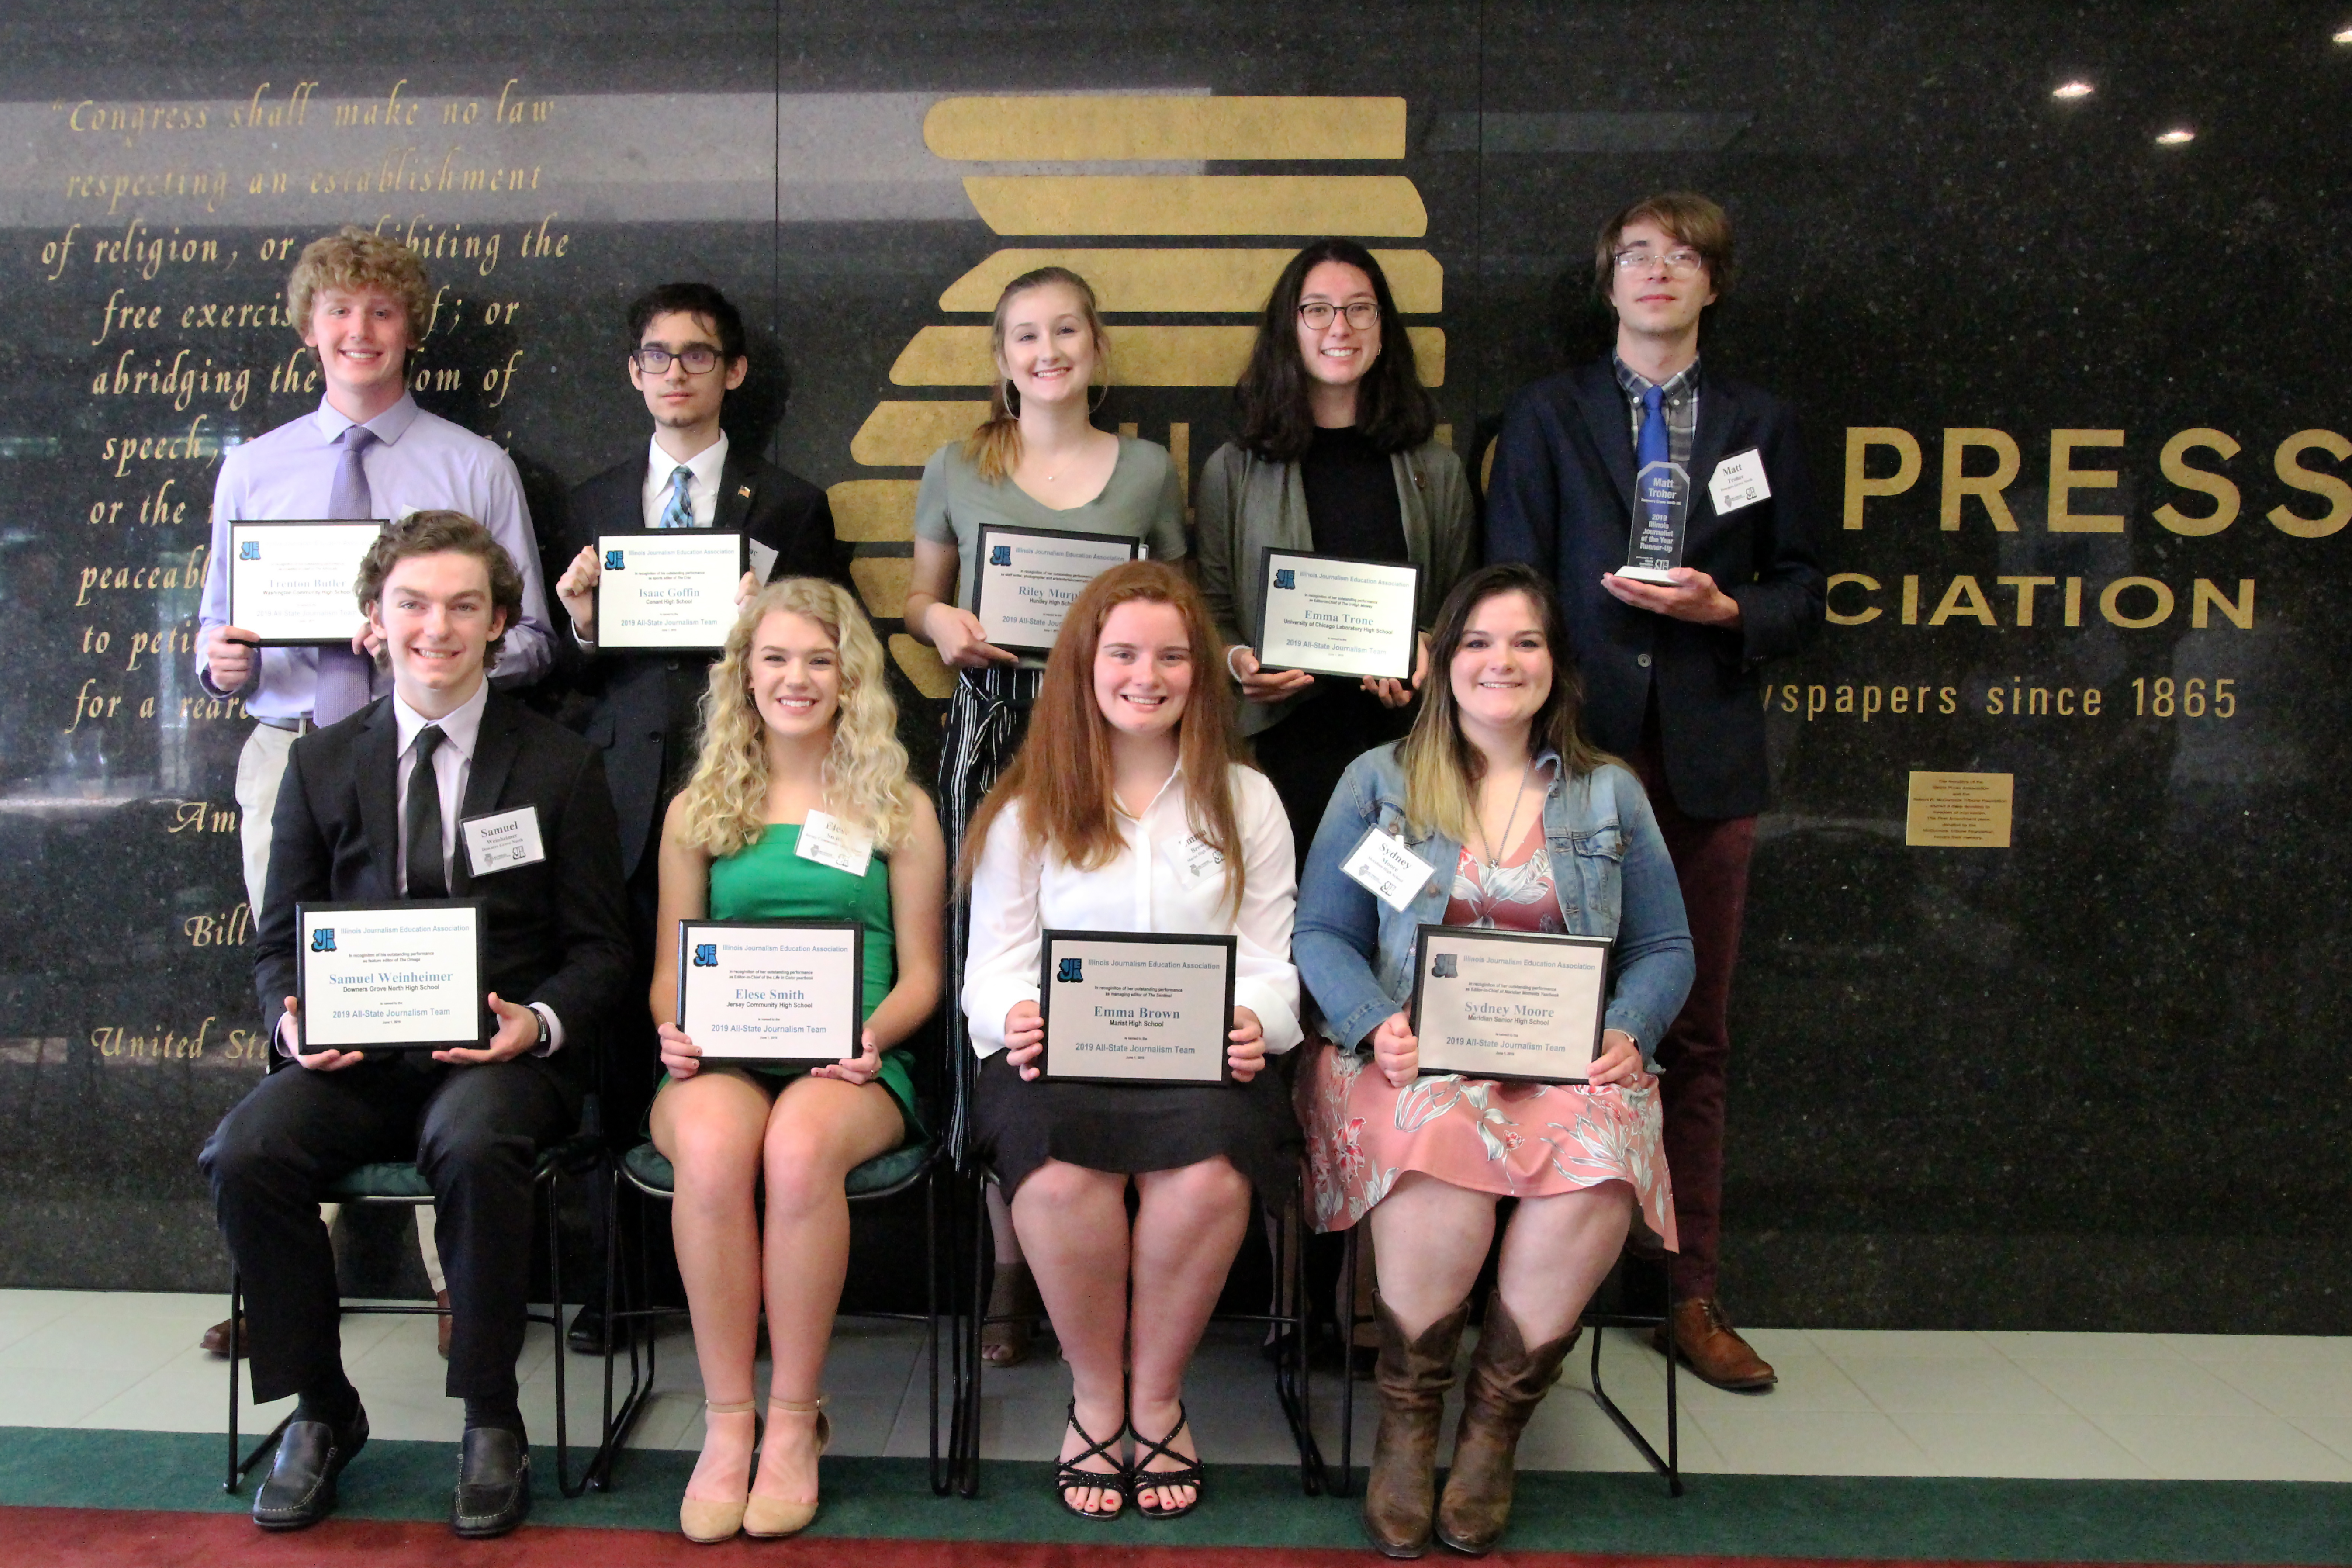 The annual Illinois Journalism Education Association/Illinois Journalist of the Year Luncheon was held June 1 at the Illinois Press Association/Foundation office in Springfield. The luncheon honored the 2019 All-State Journalism Team. (Photo courtesy of David Porreca, IJEA Board member)